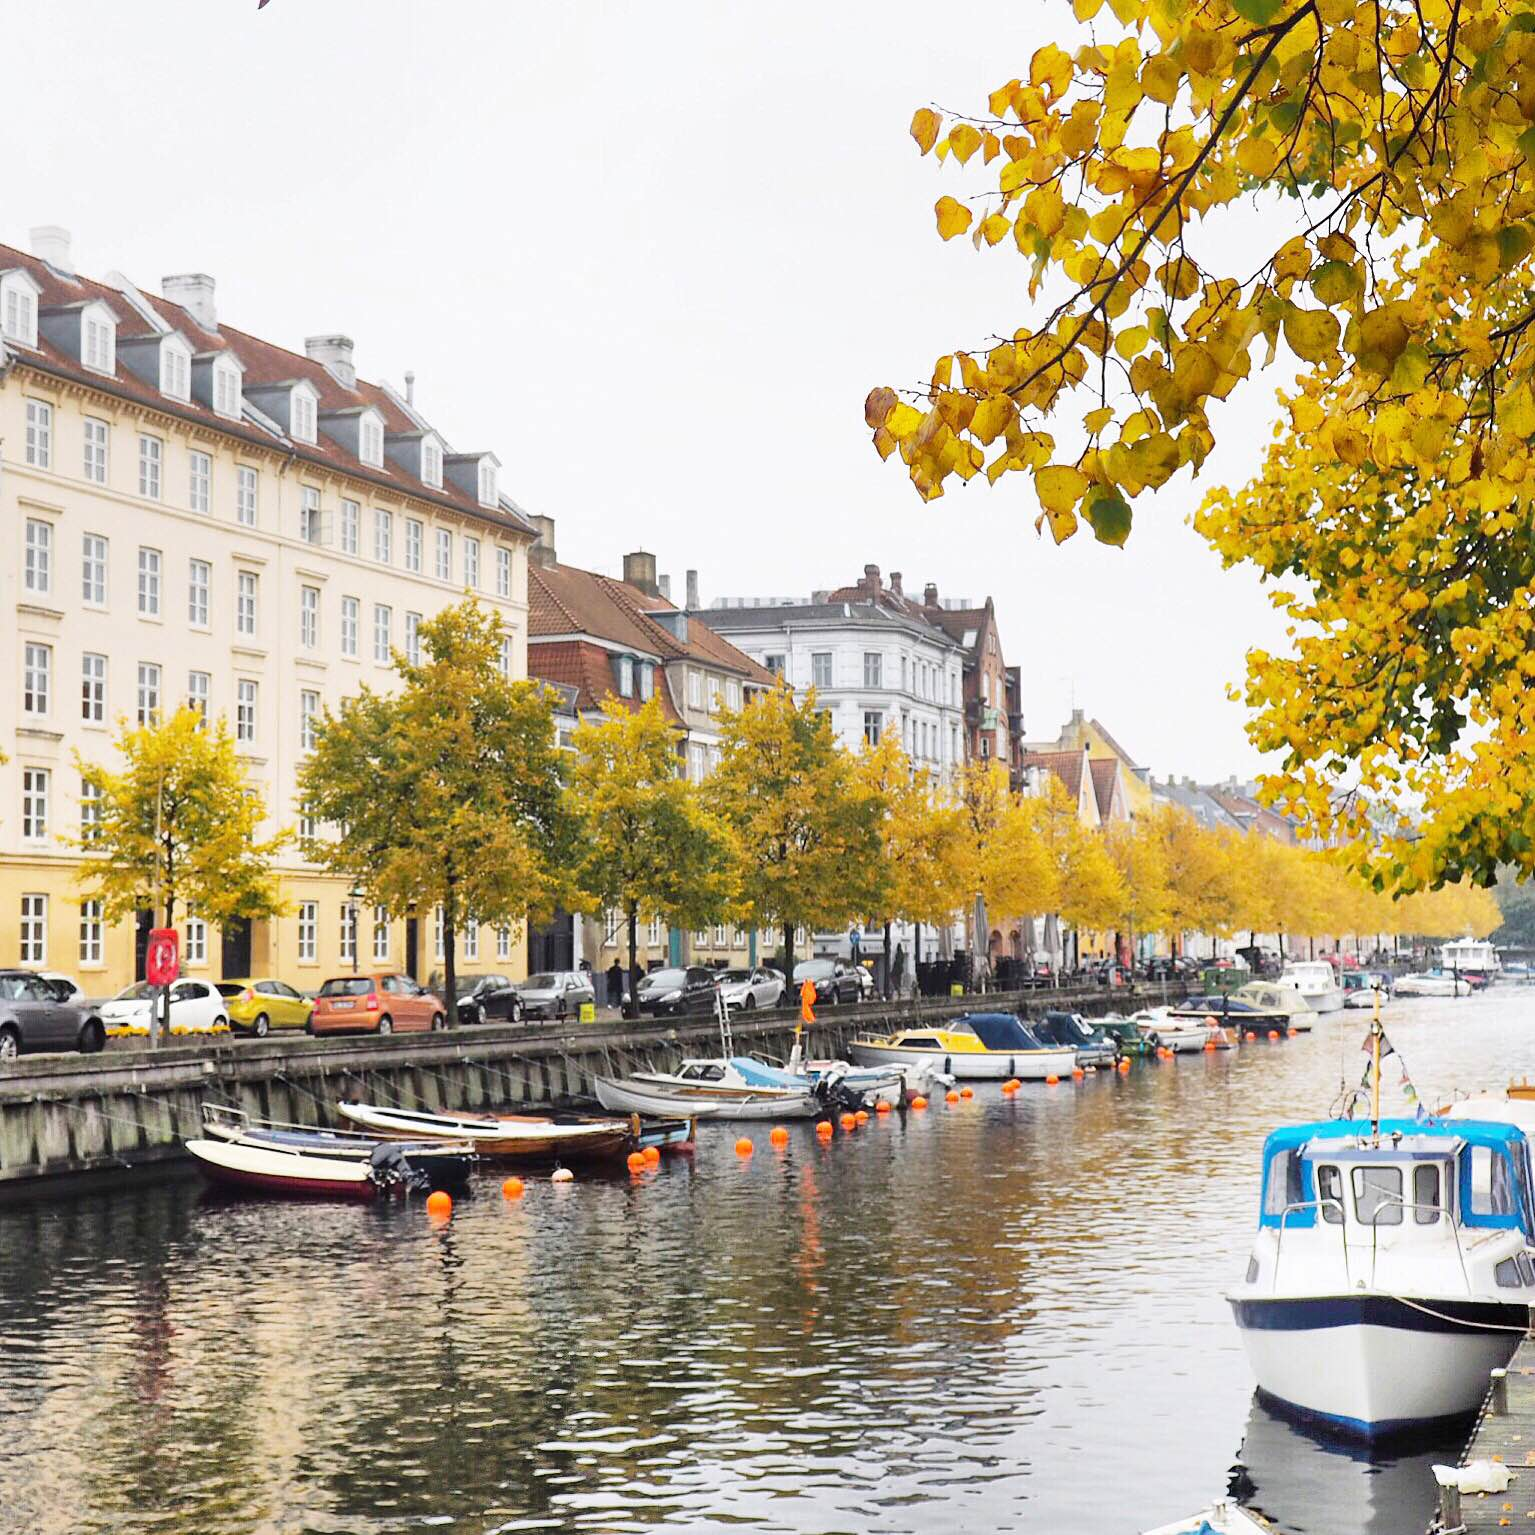 Autumn in Christianshavn. Yellow leaves and lots of boats. Christianshavn in Copenhagen